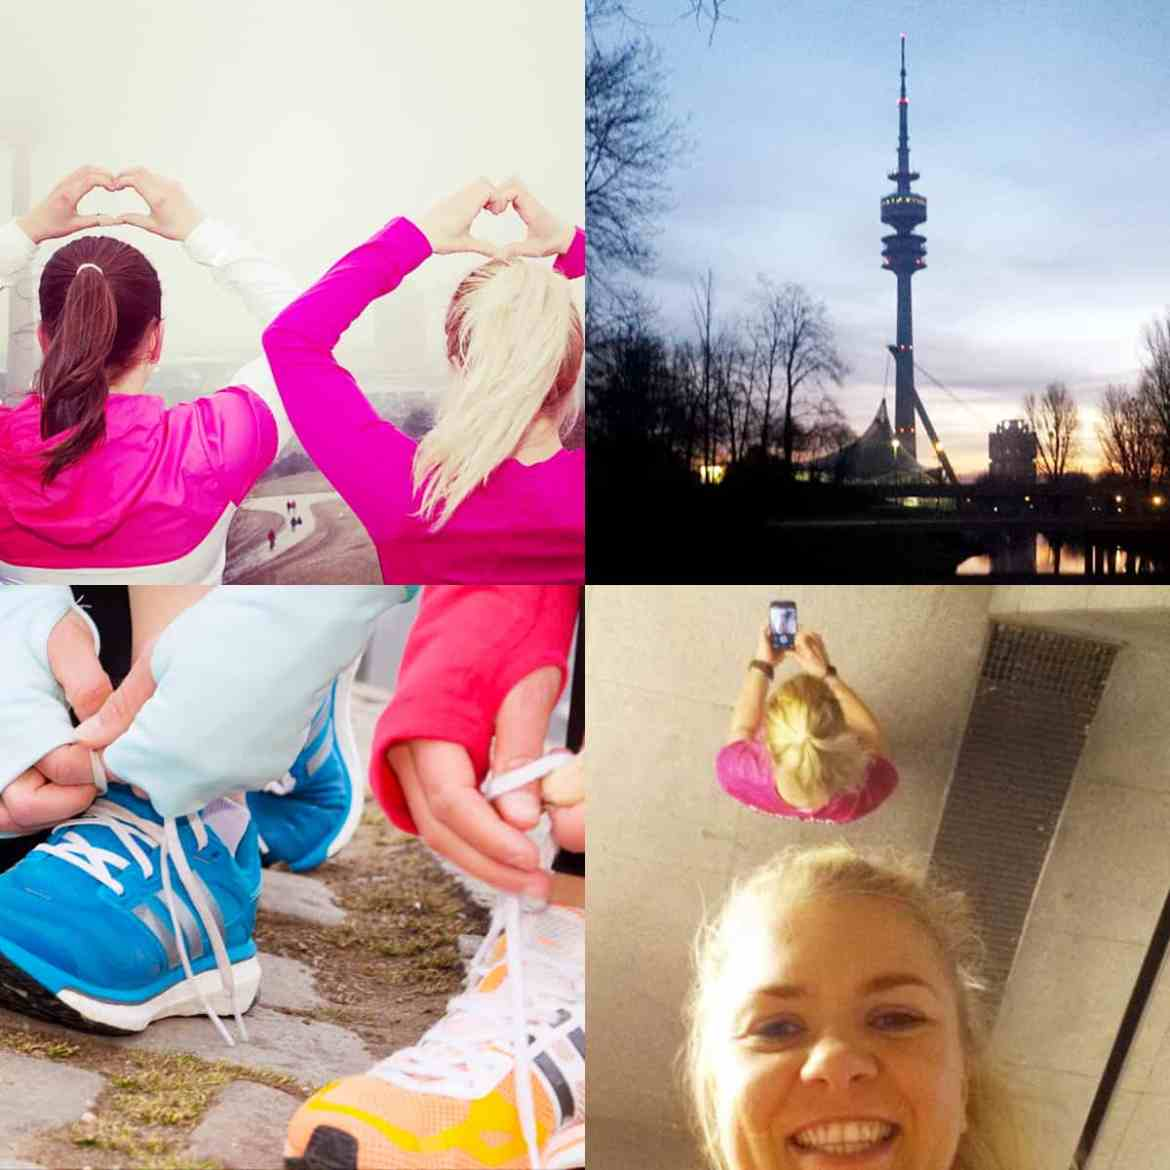 Bester deutscher Instagram Account Laufen von Run Munich Run